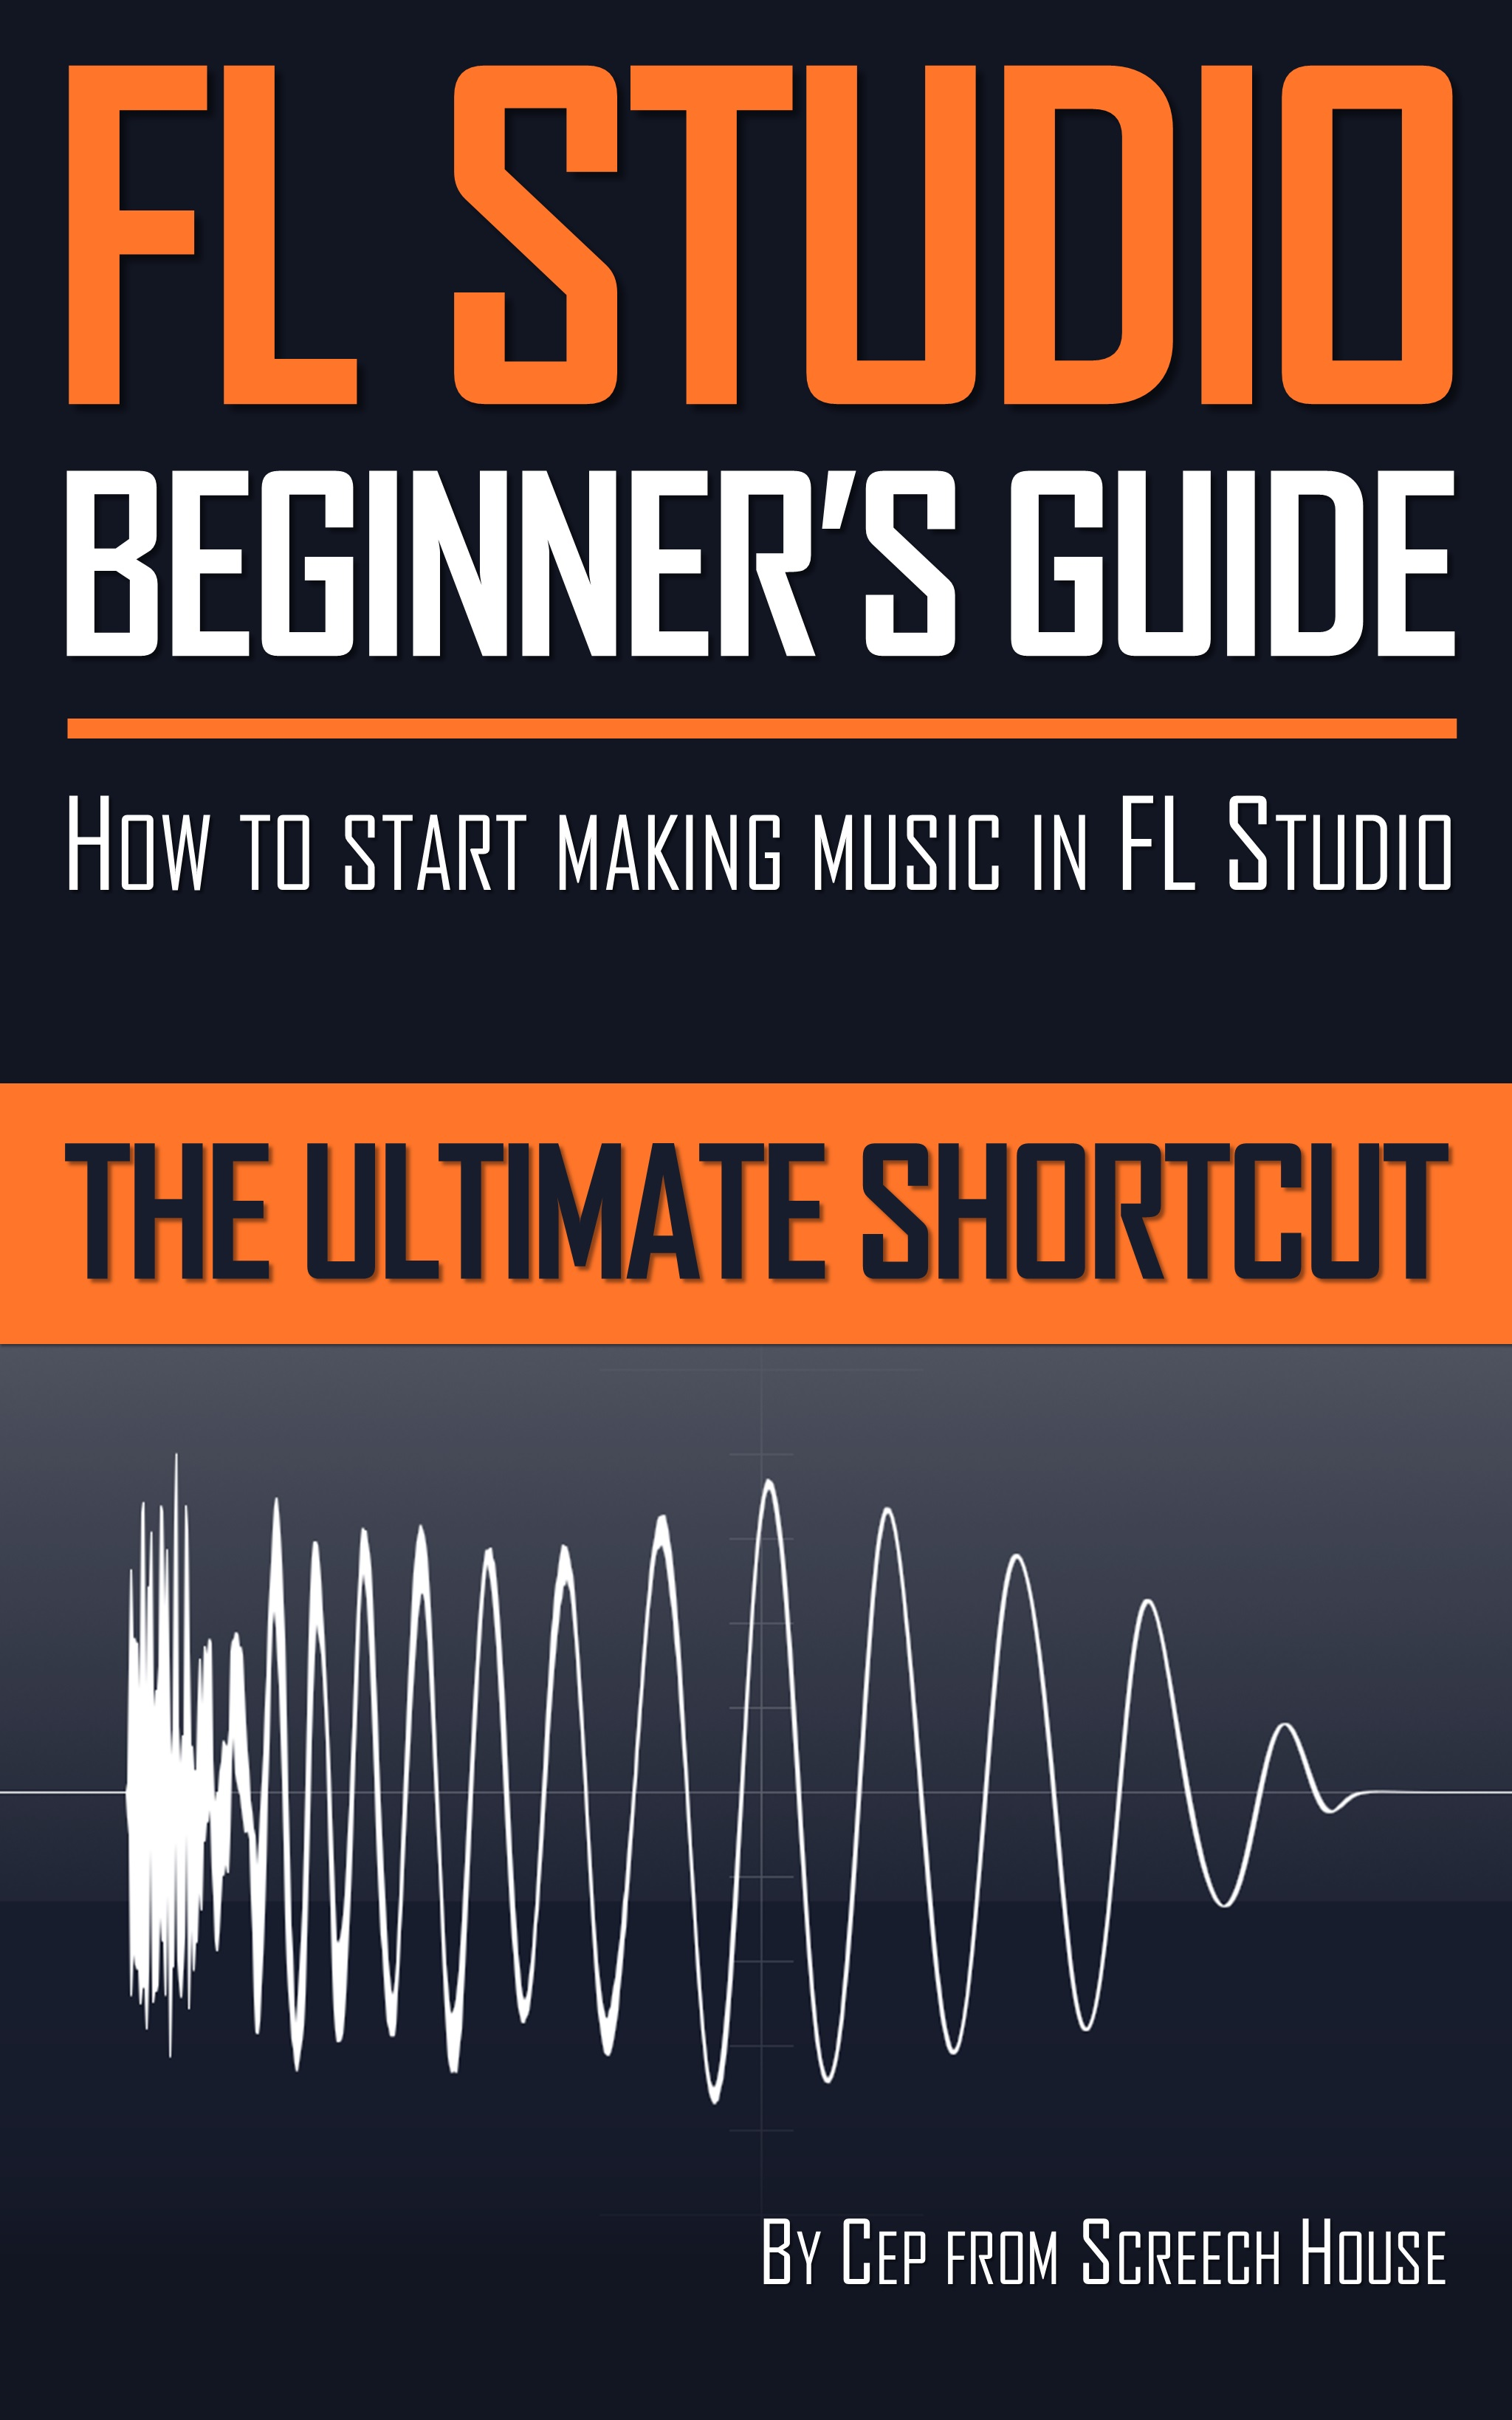 FL Studio Beginners Guide